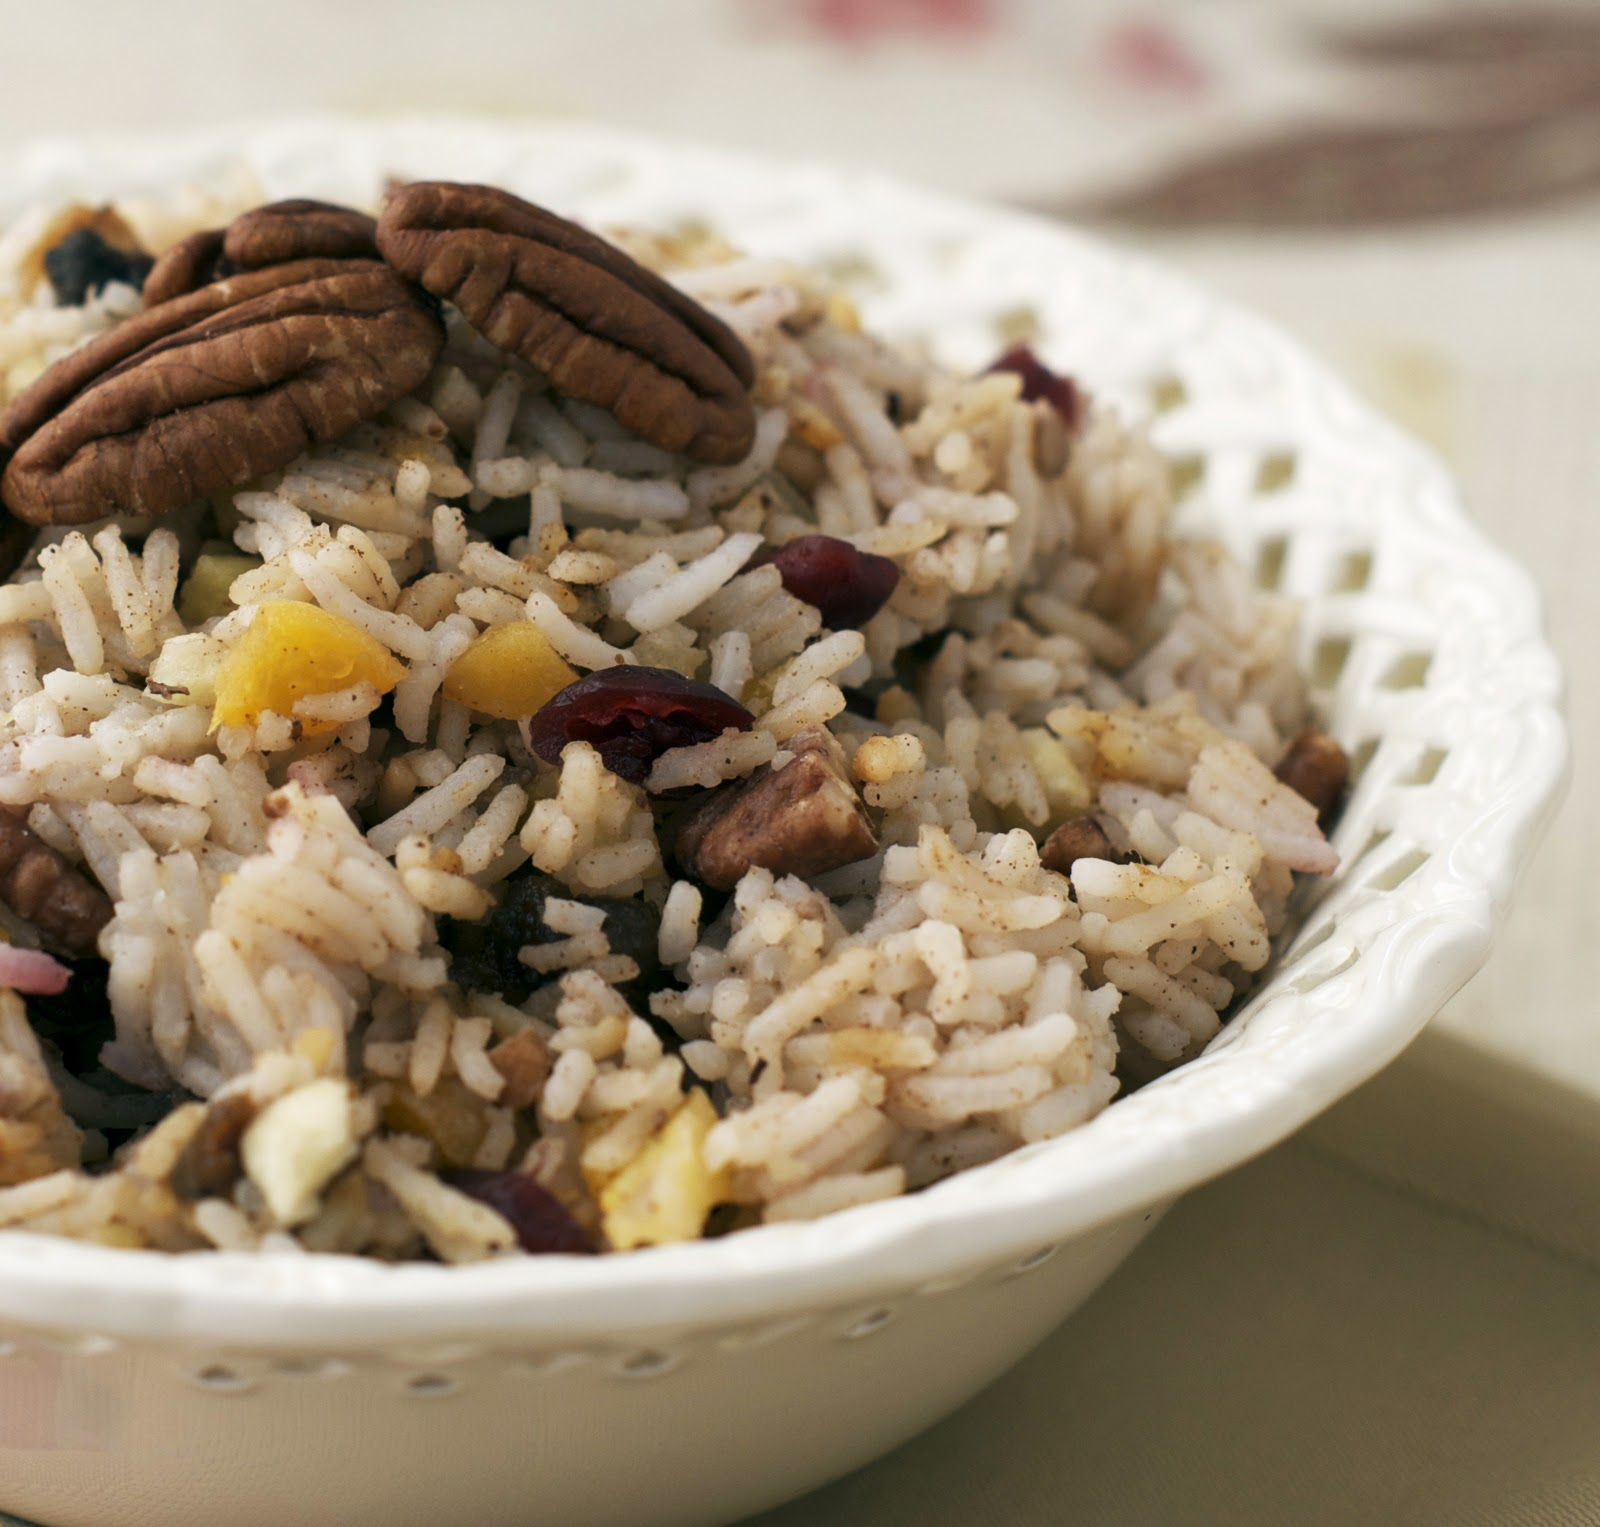 Festive Rice with Fruits and Nuts ~ Heat Oven to 350